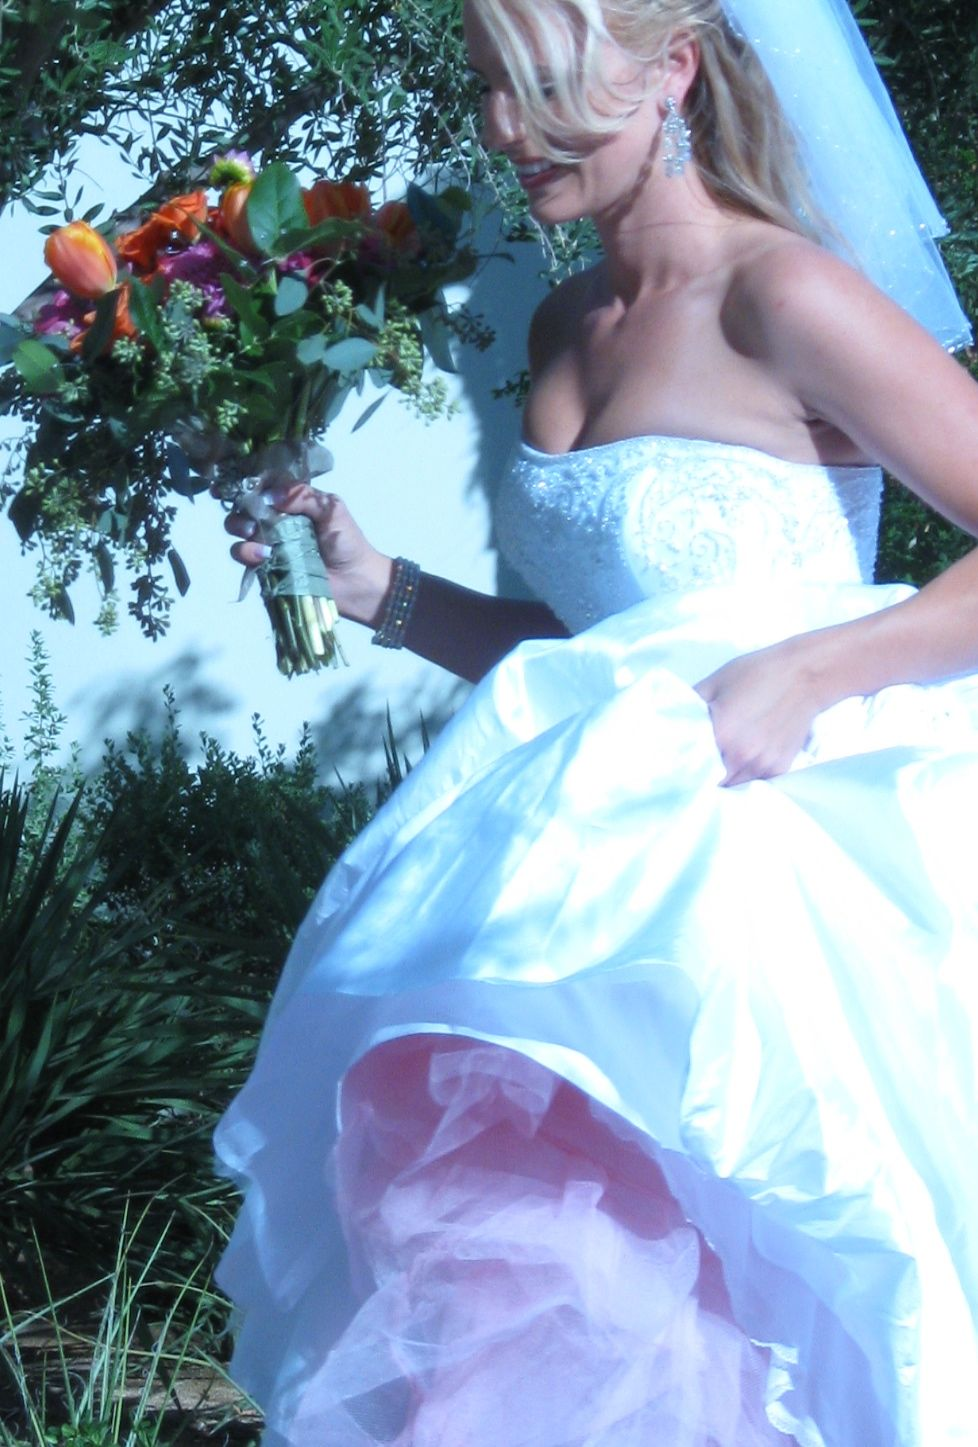 BeautifulBrideAndBouquet.jpg